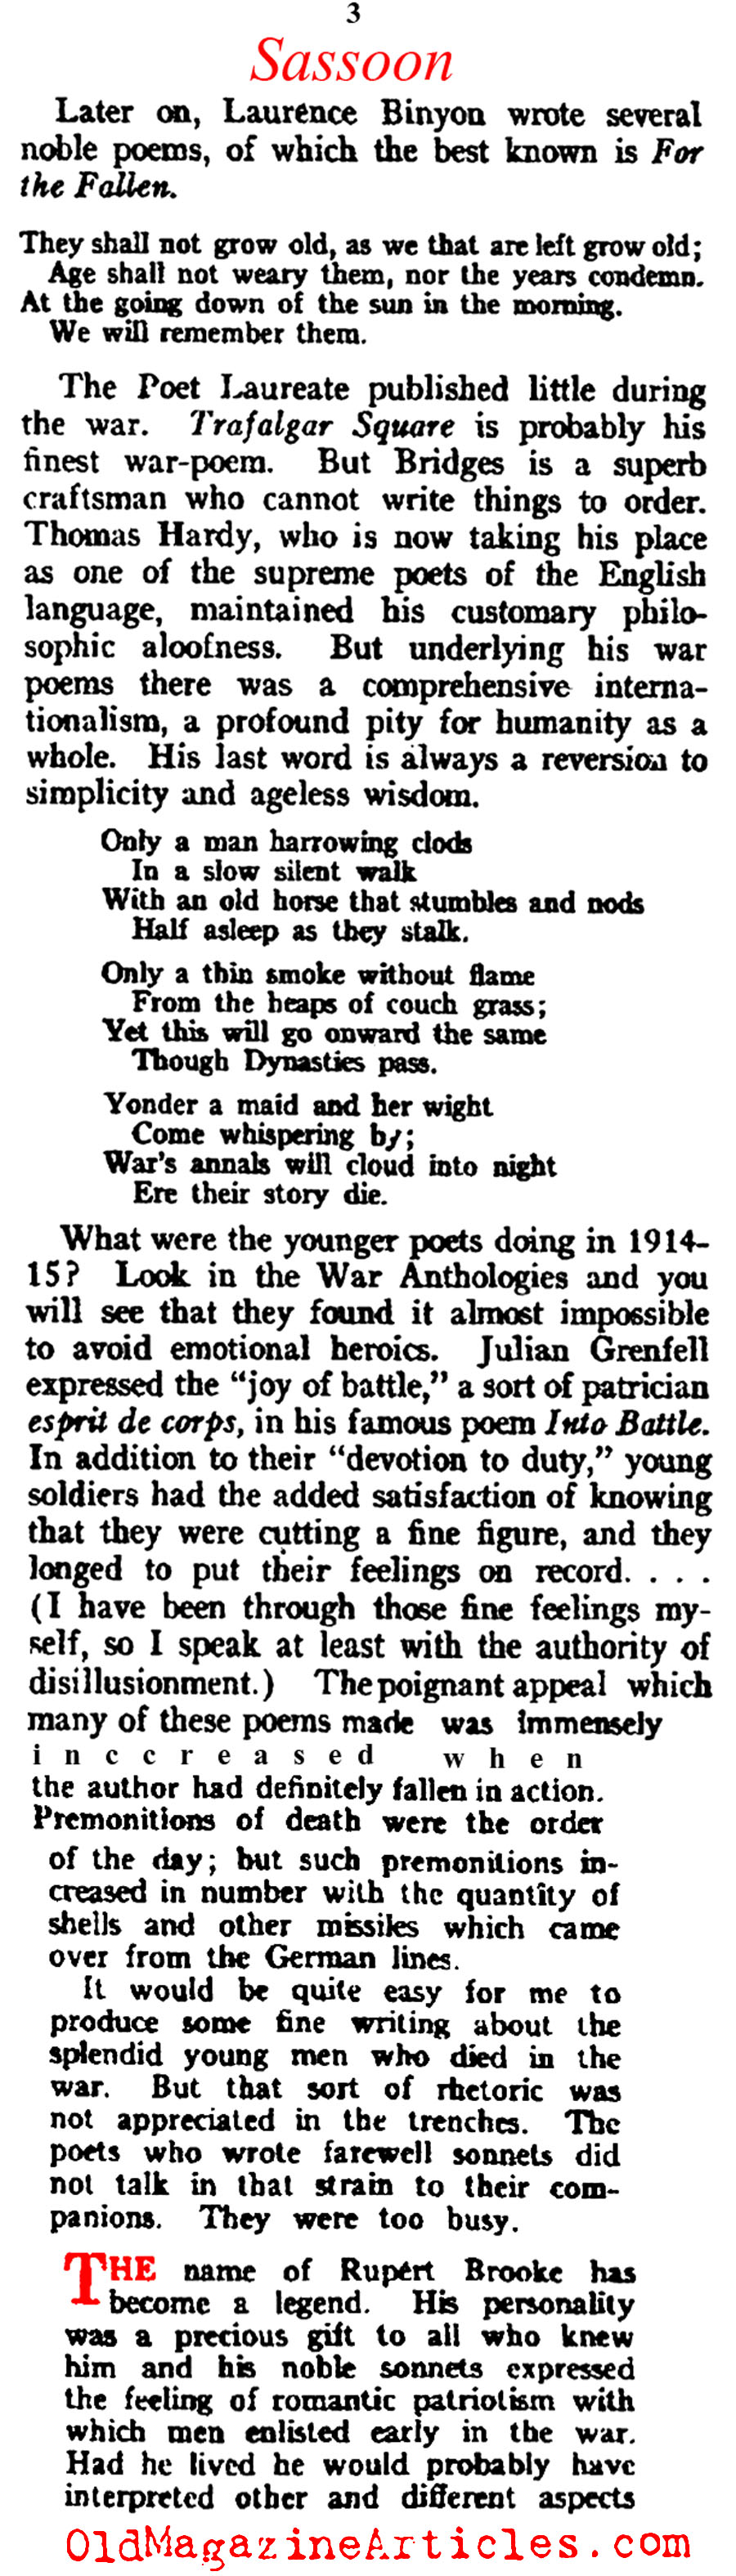 ''Some Aspects of War Poetry by Siegfried Sassoon (Vanity Fair Magazine, 1920)